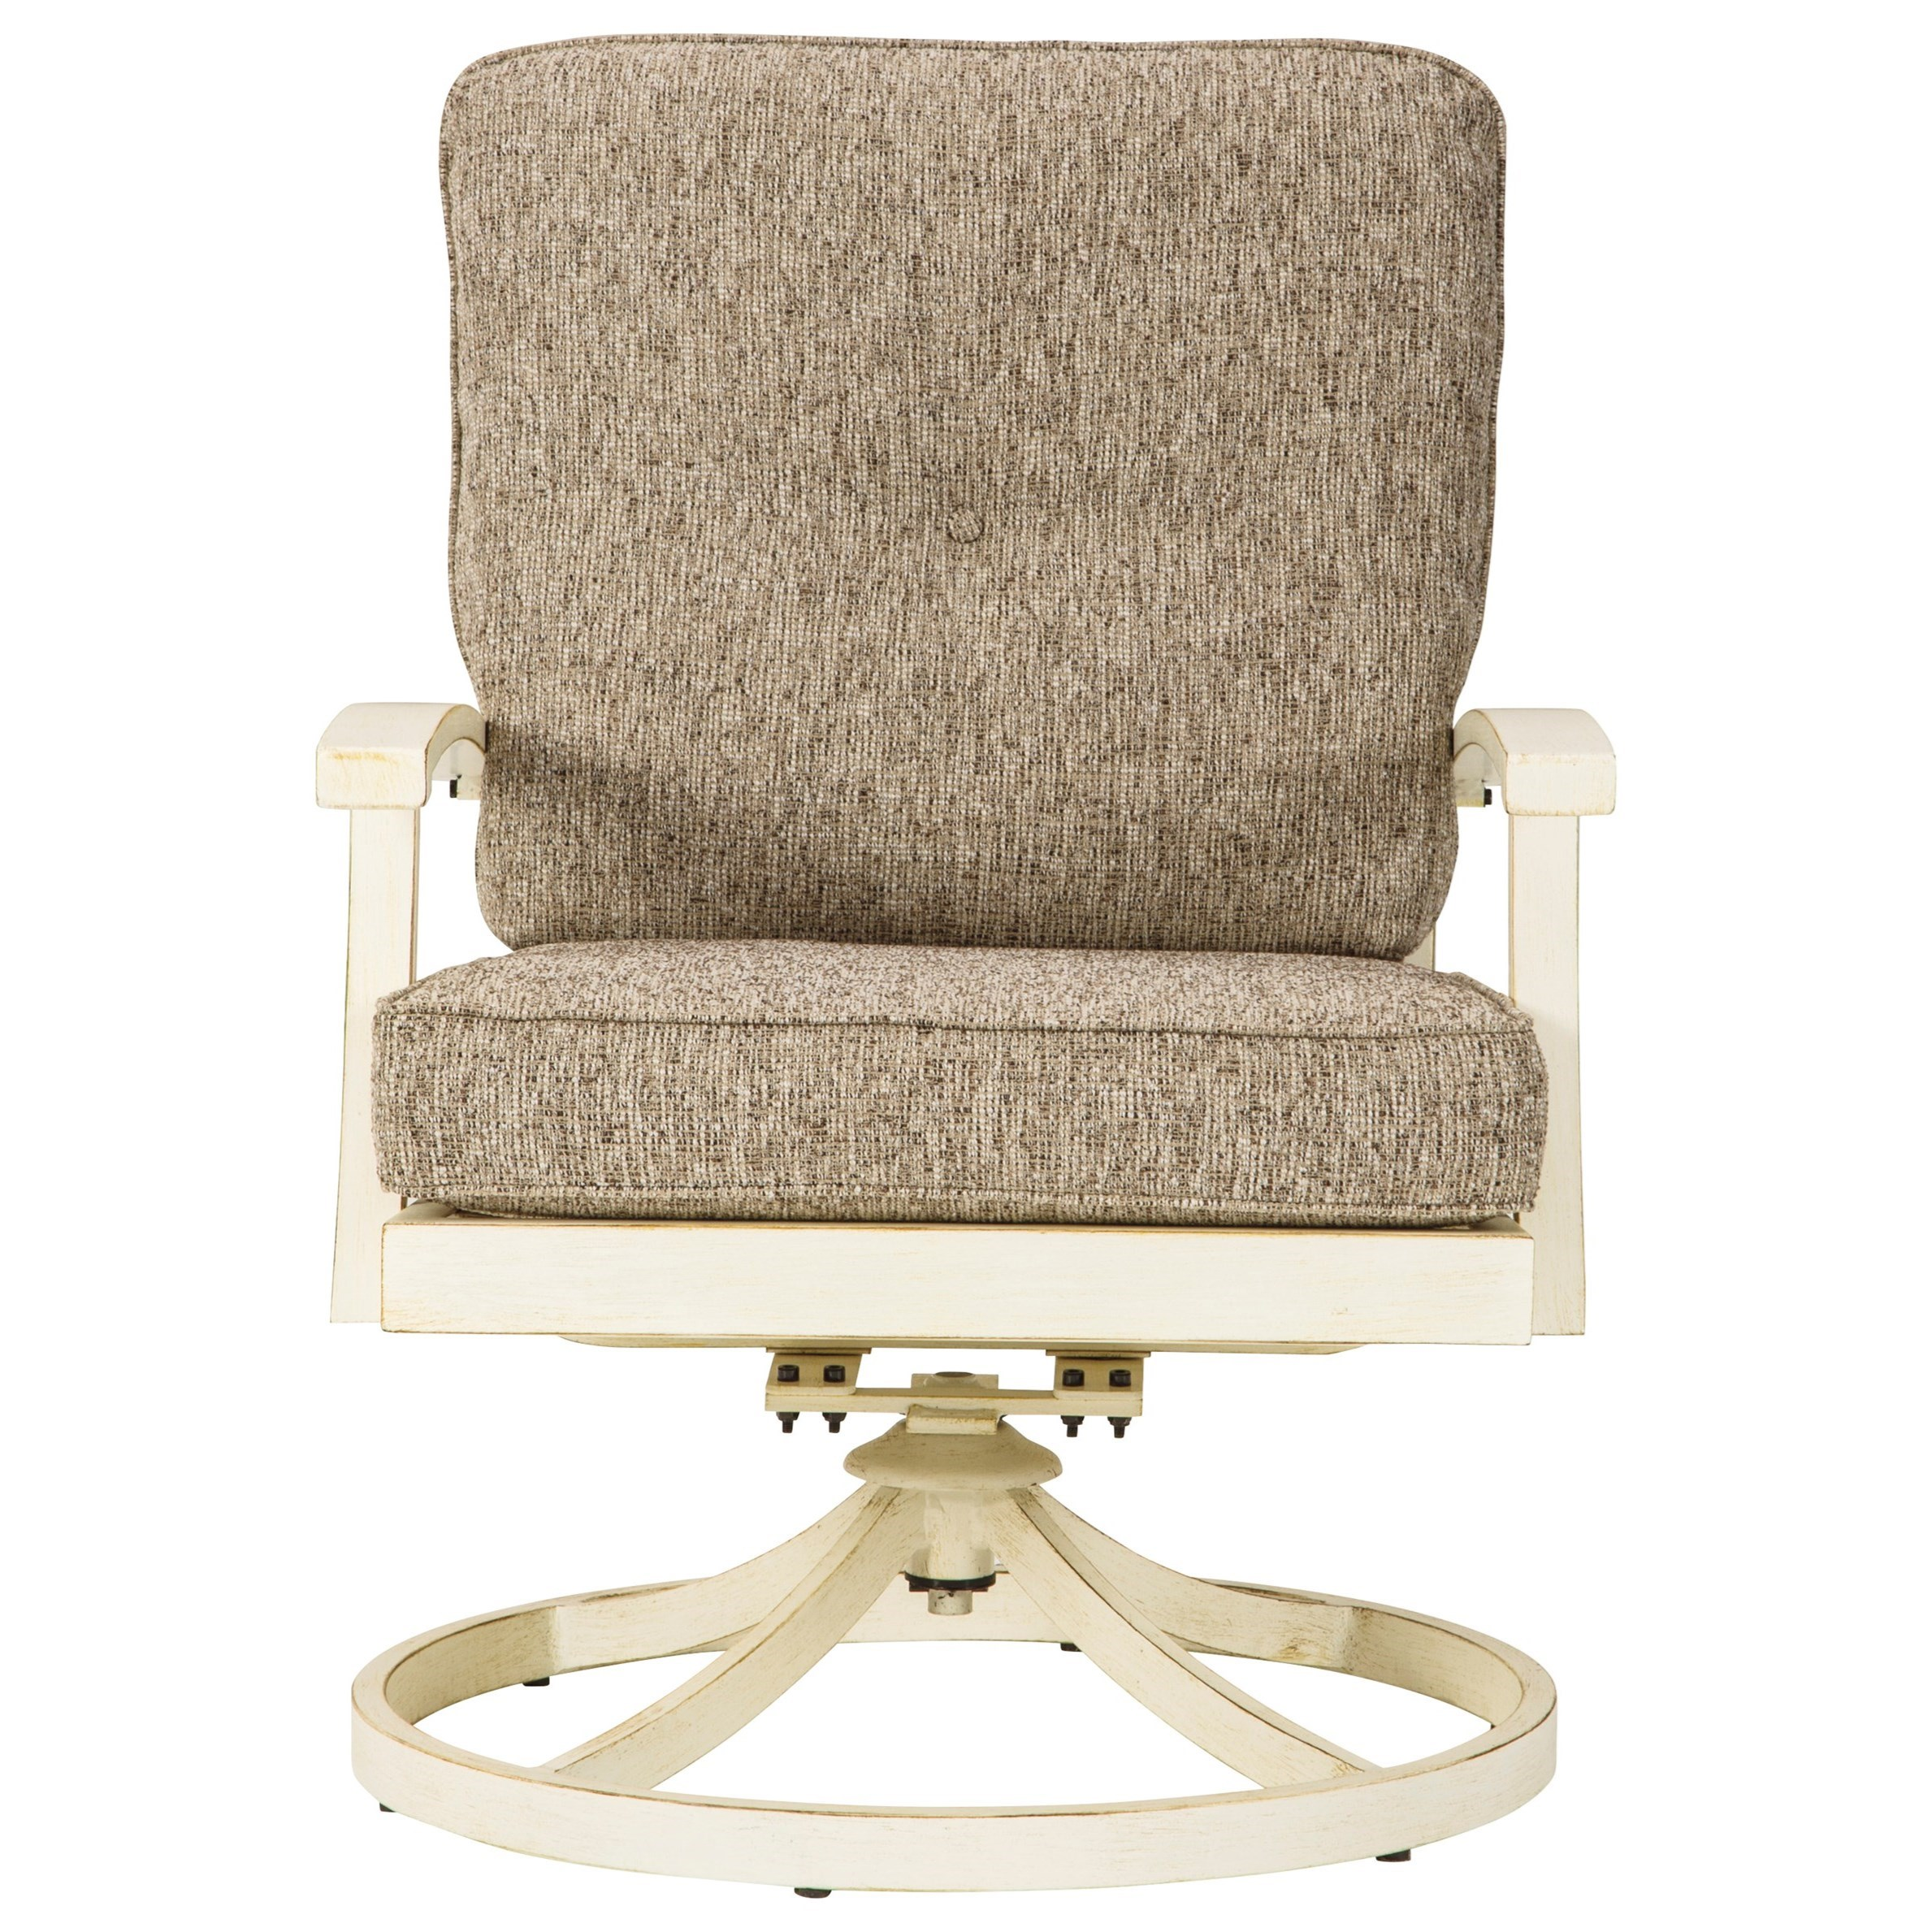 Preston Bay Set of 2 Swivel Lounge Chairs with Cushions by Signature Design by Ashley at Miller Waldrop Furniture and Decor